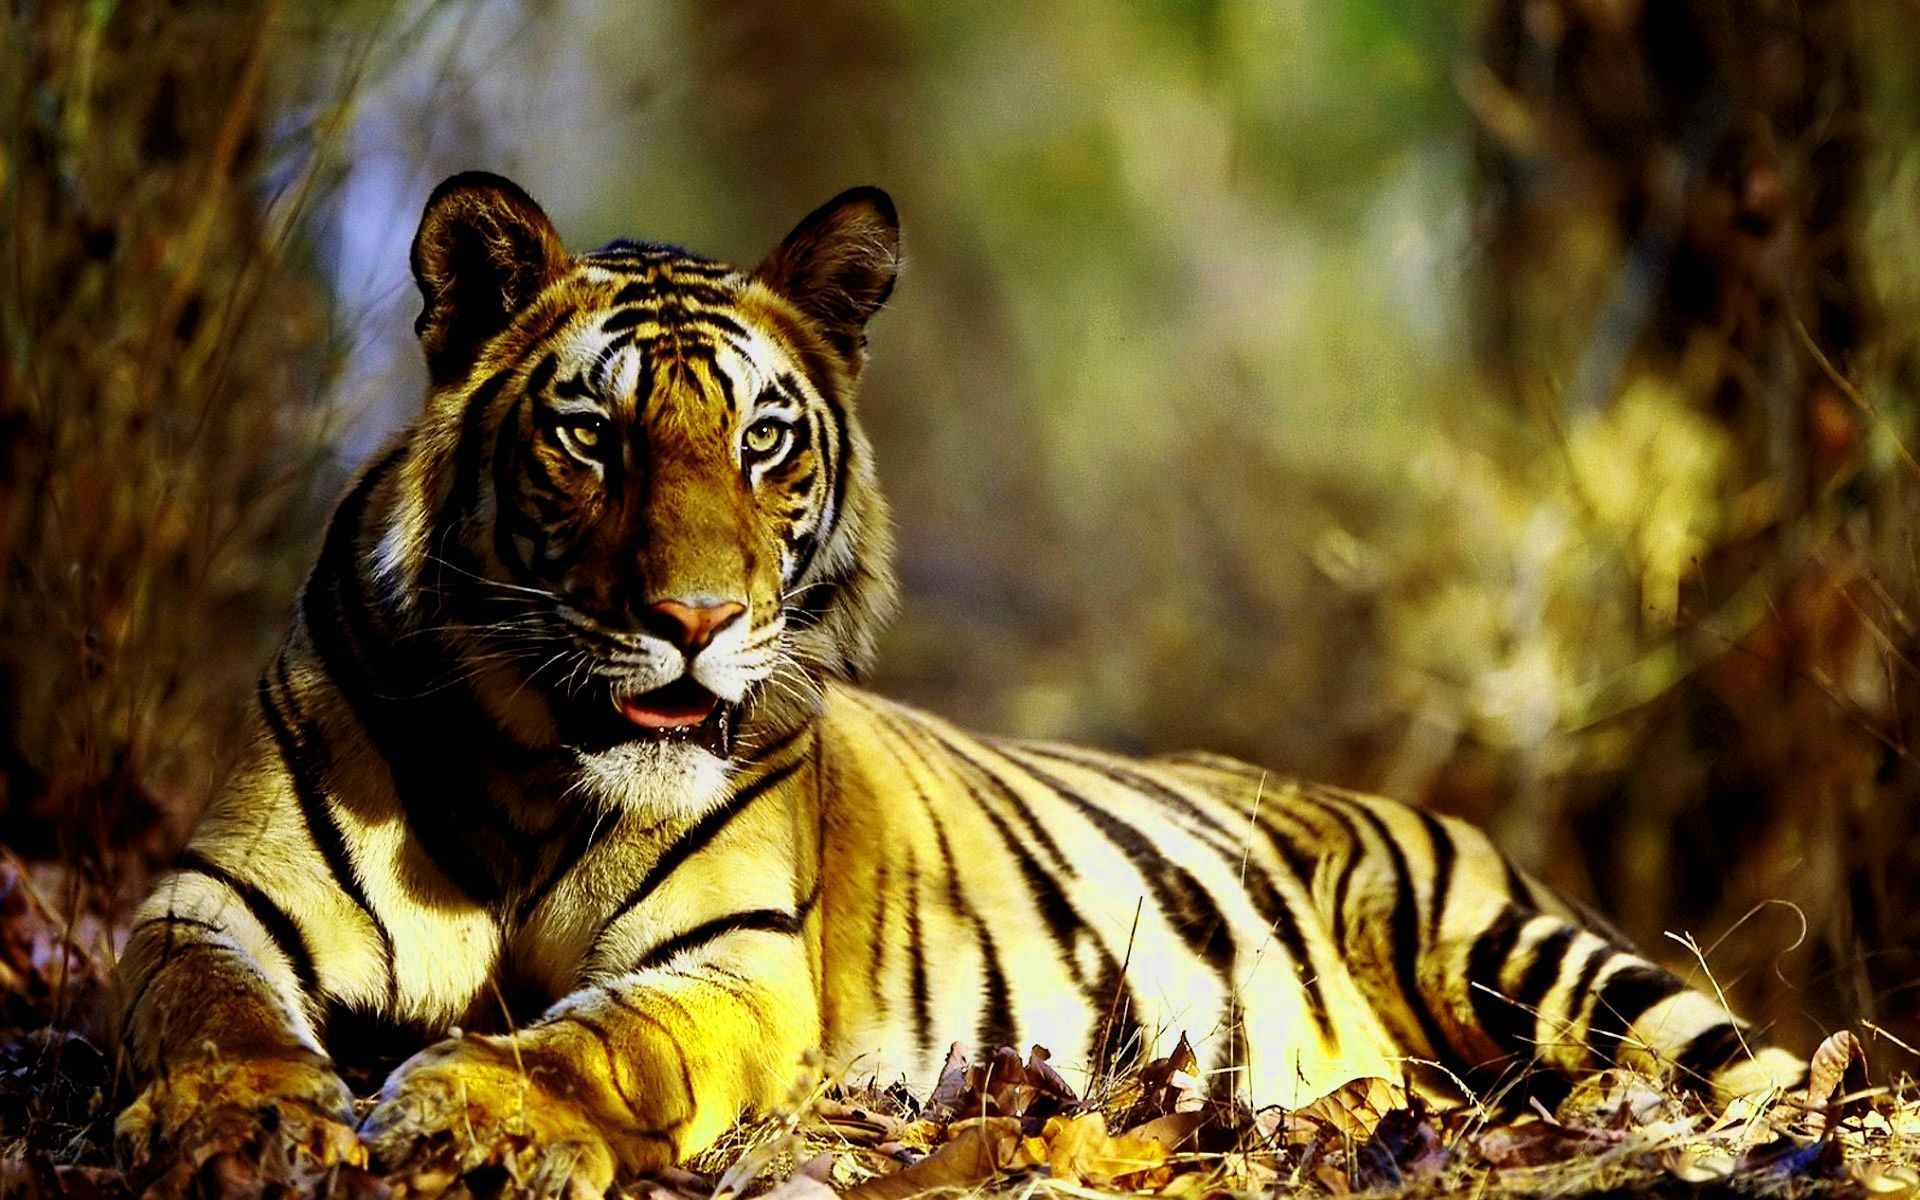 Hd Photos Of Tigers Blogua Free Ultra Hd 3840x2160 High Definition Wallpaper High Definition Background 4k Wall Tiger Photo Tiger Hd Wallpapers Tiger Hd